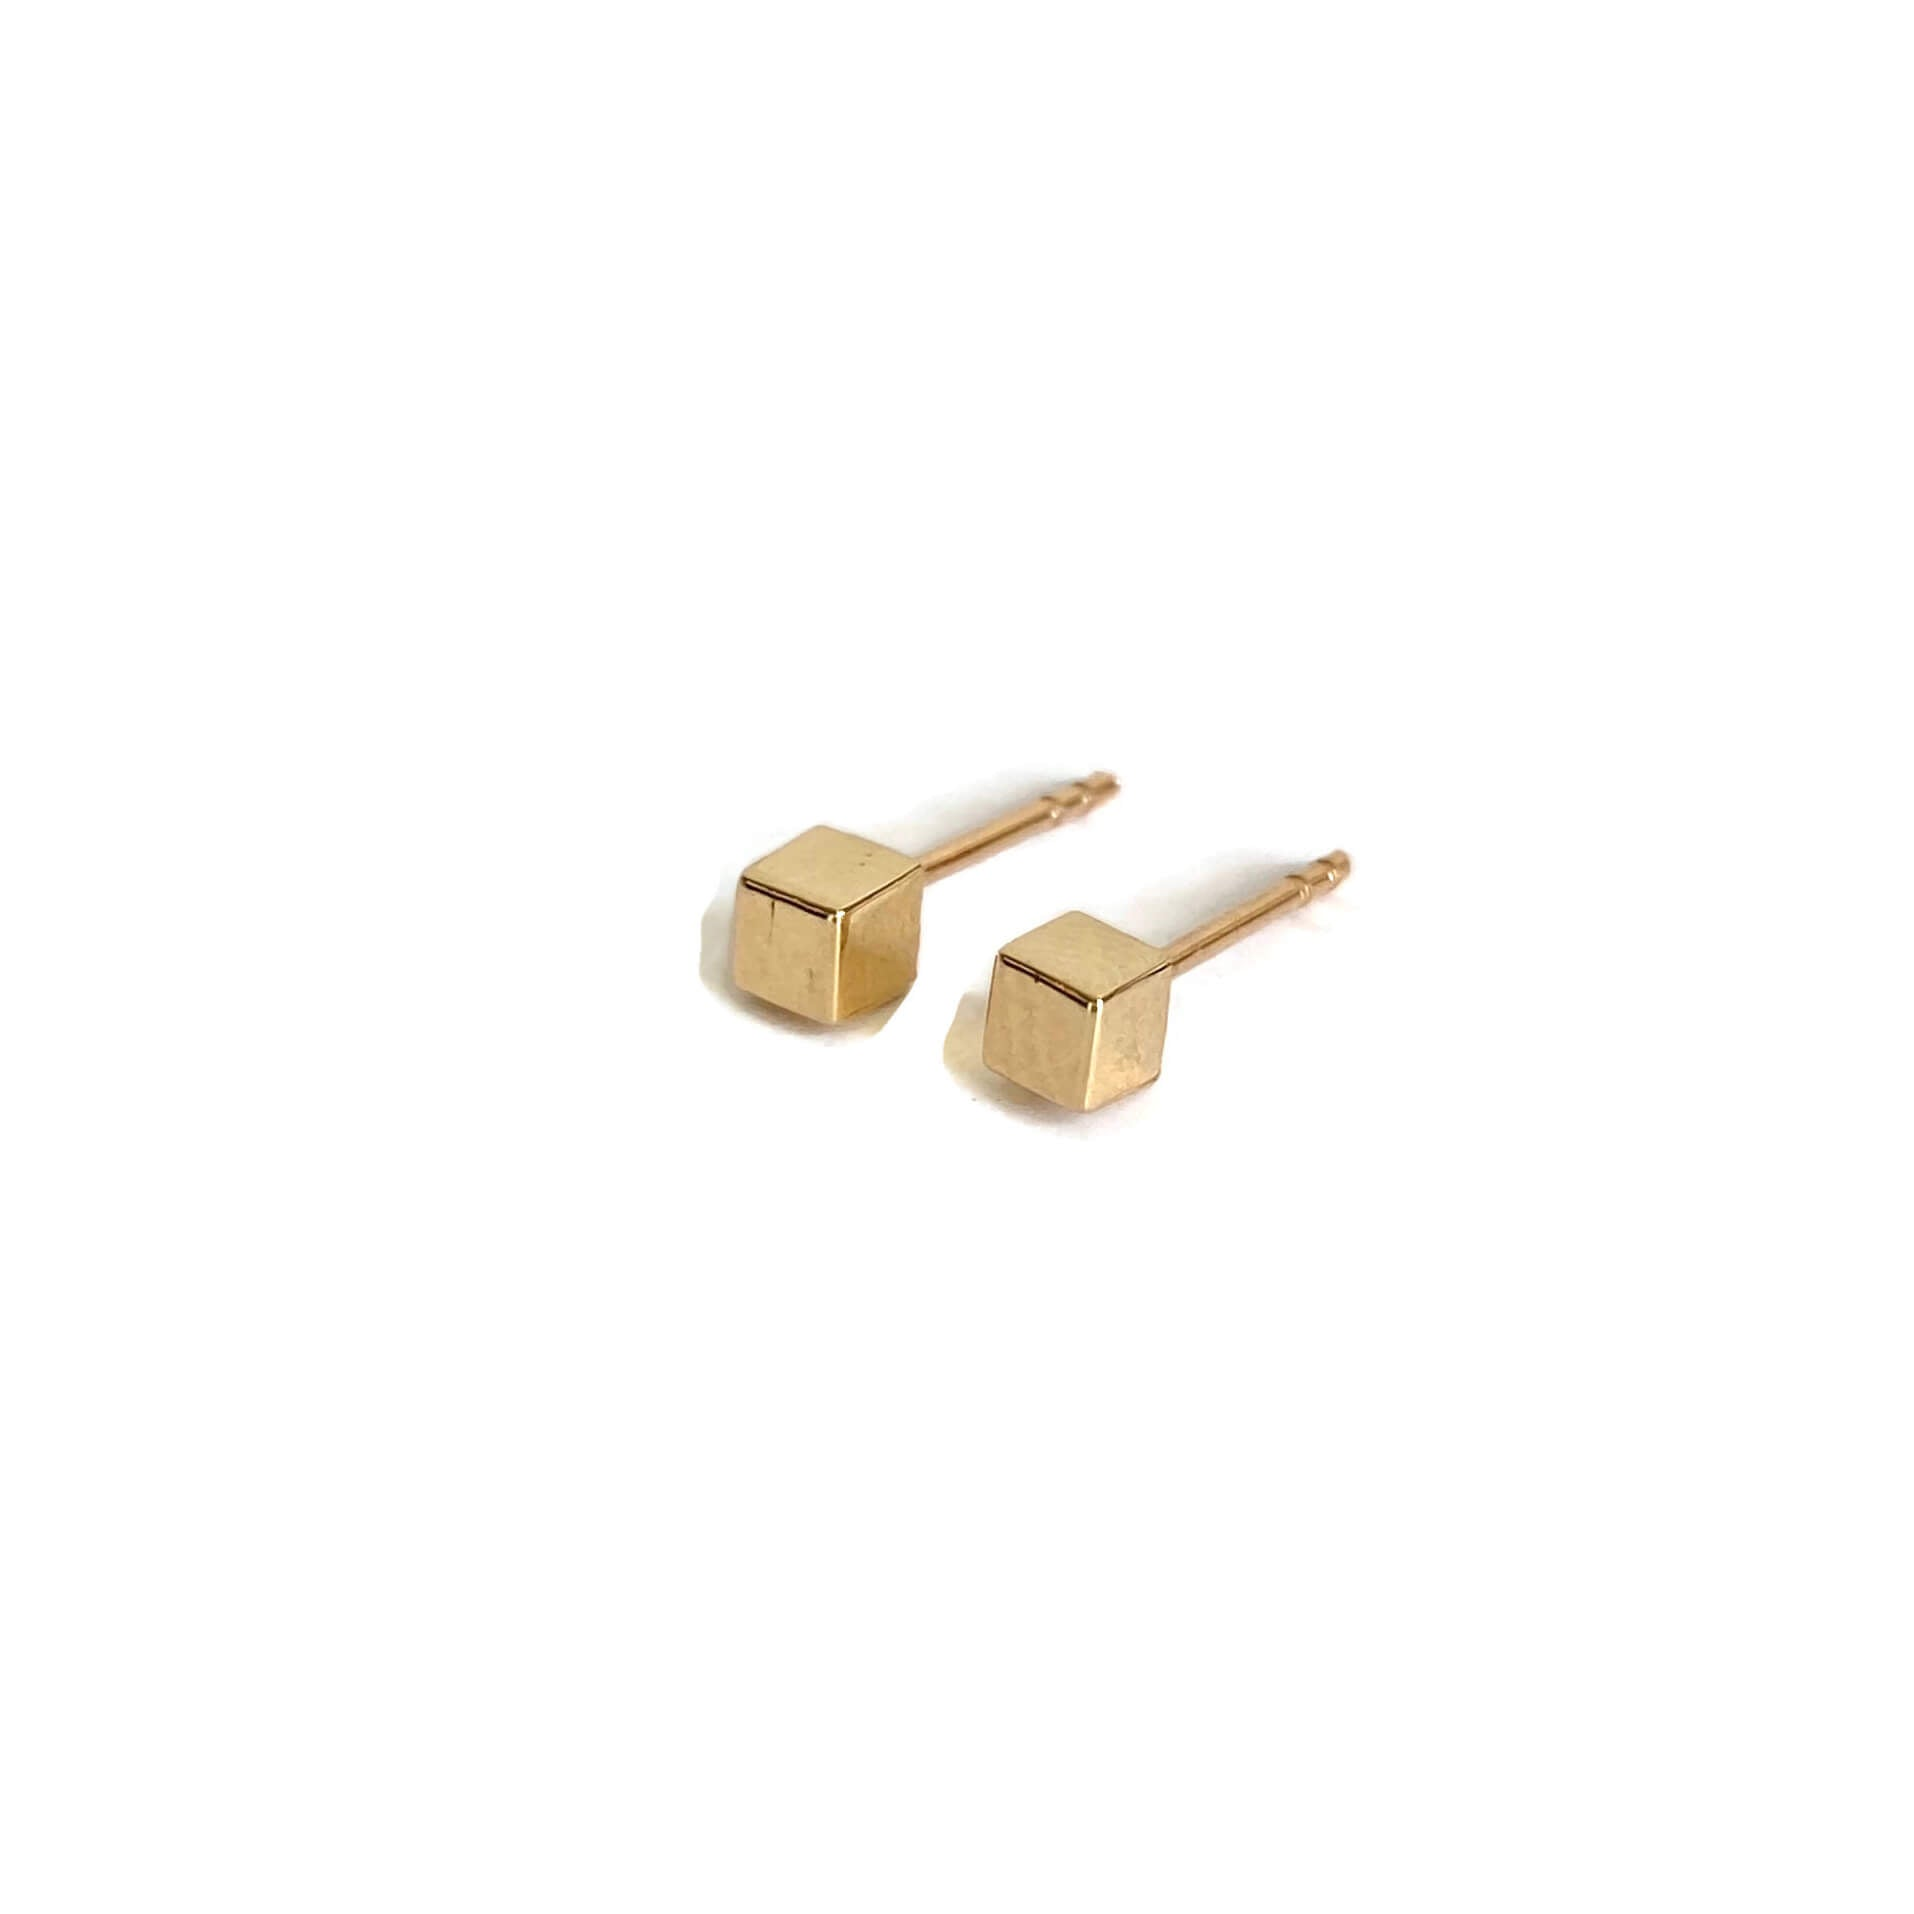 The cube stud earrings made of solid 14k yellow gold with 14k yellow gold ear posts.